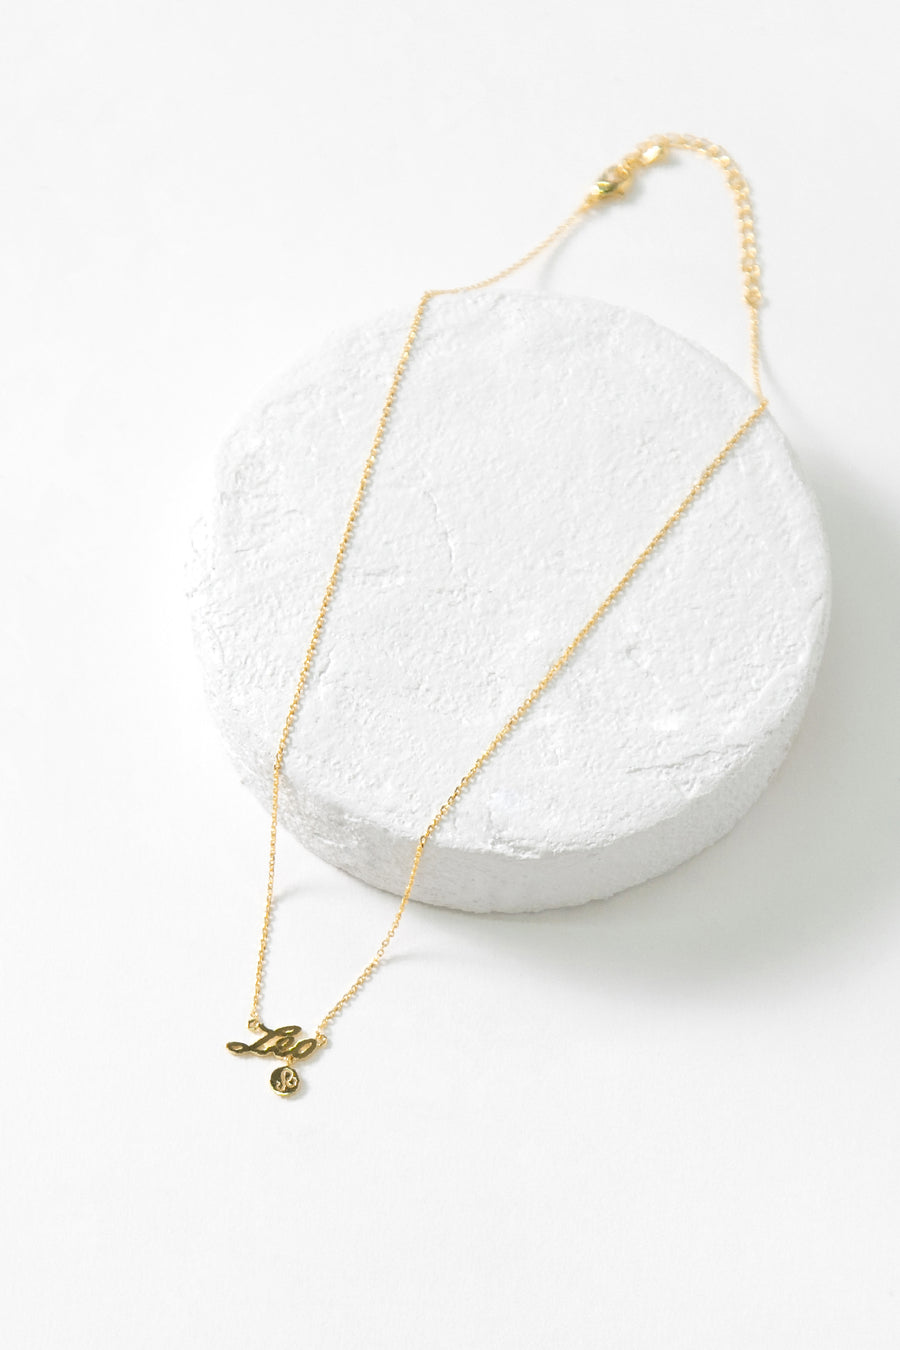 LEO HOROSCOPE NECKLACE